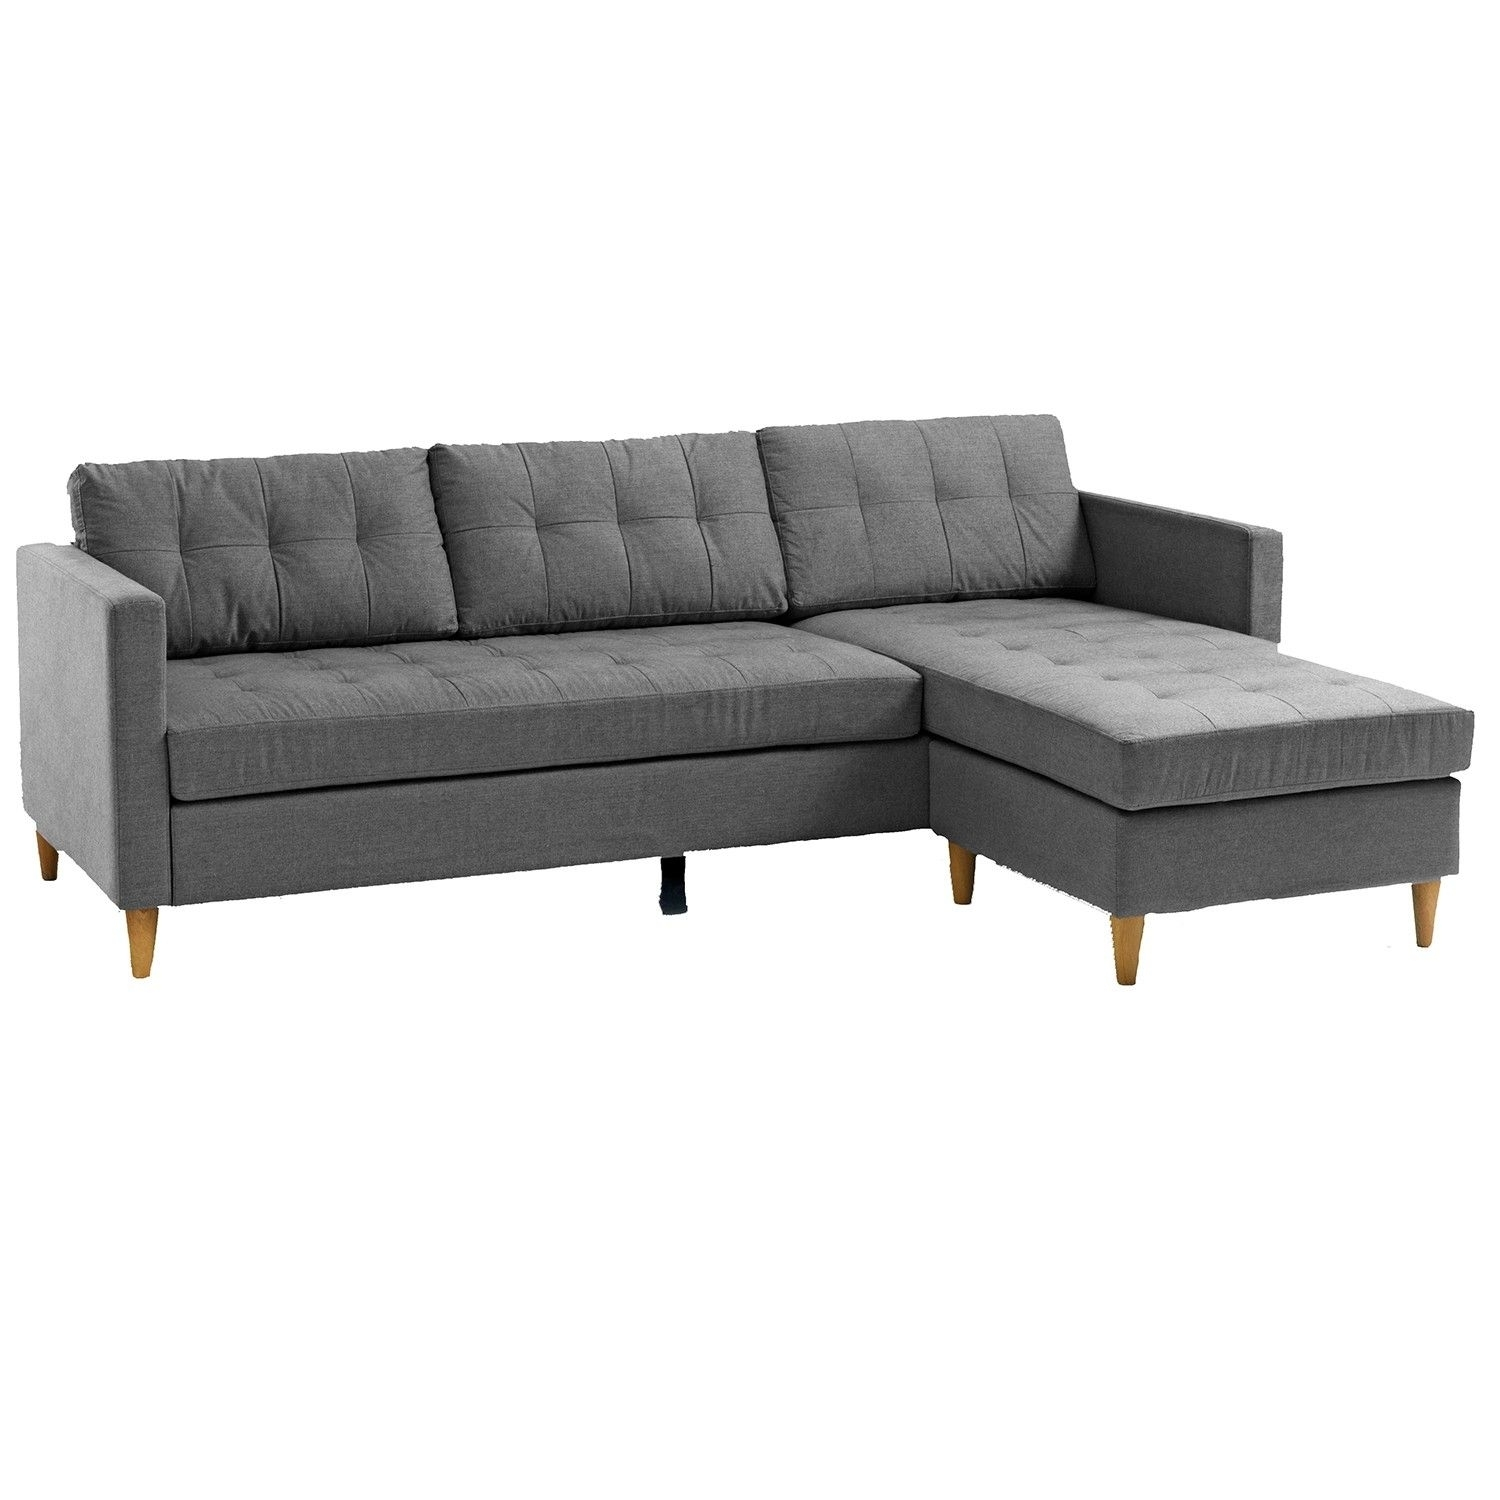 Falslev Sectional Sofa With Chaise (Grey) | Apartments, Living Rooms Within Jysk Sectional Sofas (Image 6 of 10)